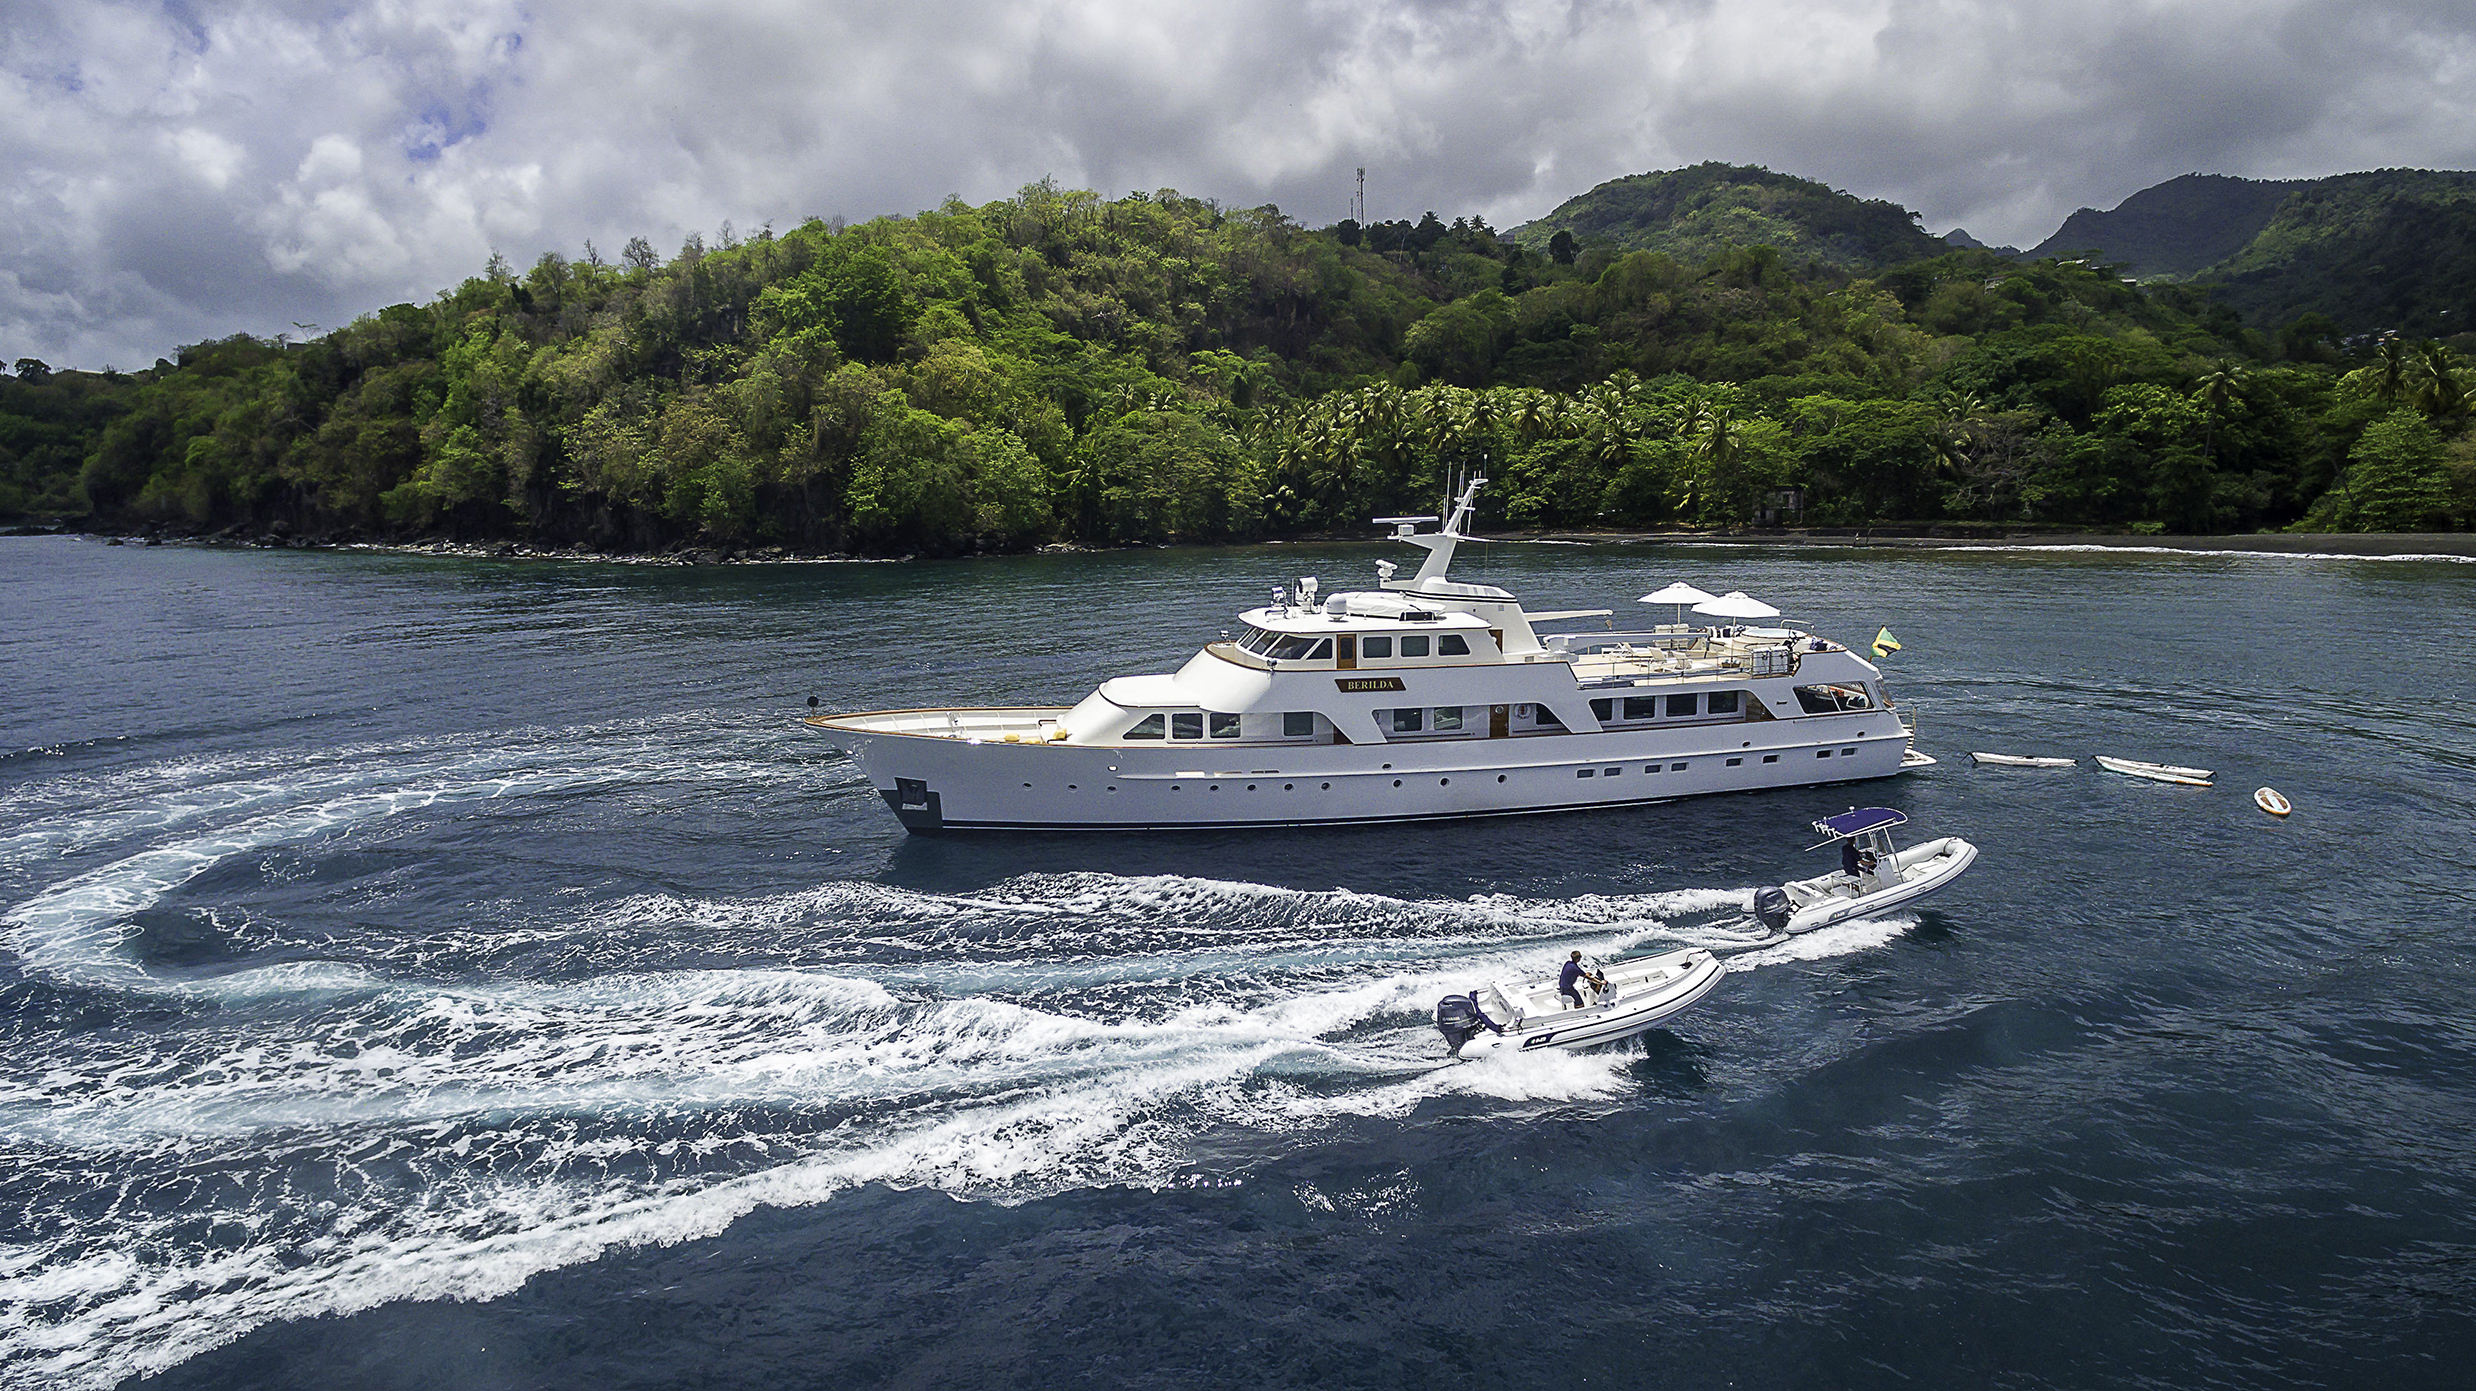 Motor yacht BERILDA - Photographed by Thierry Dehove